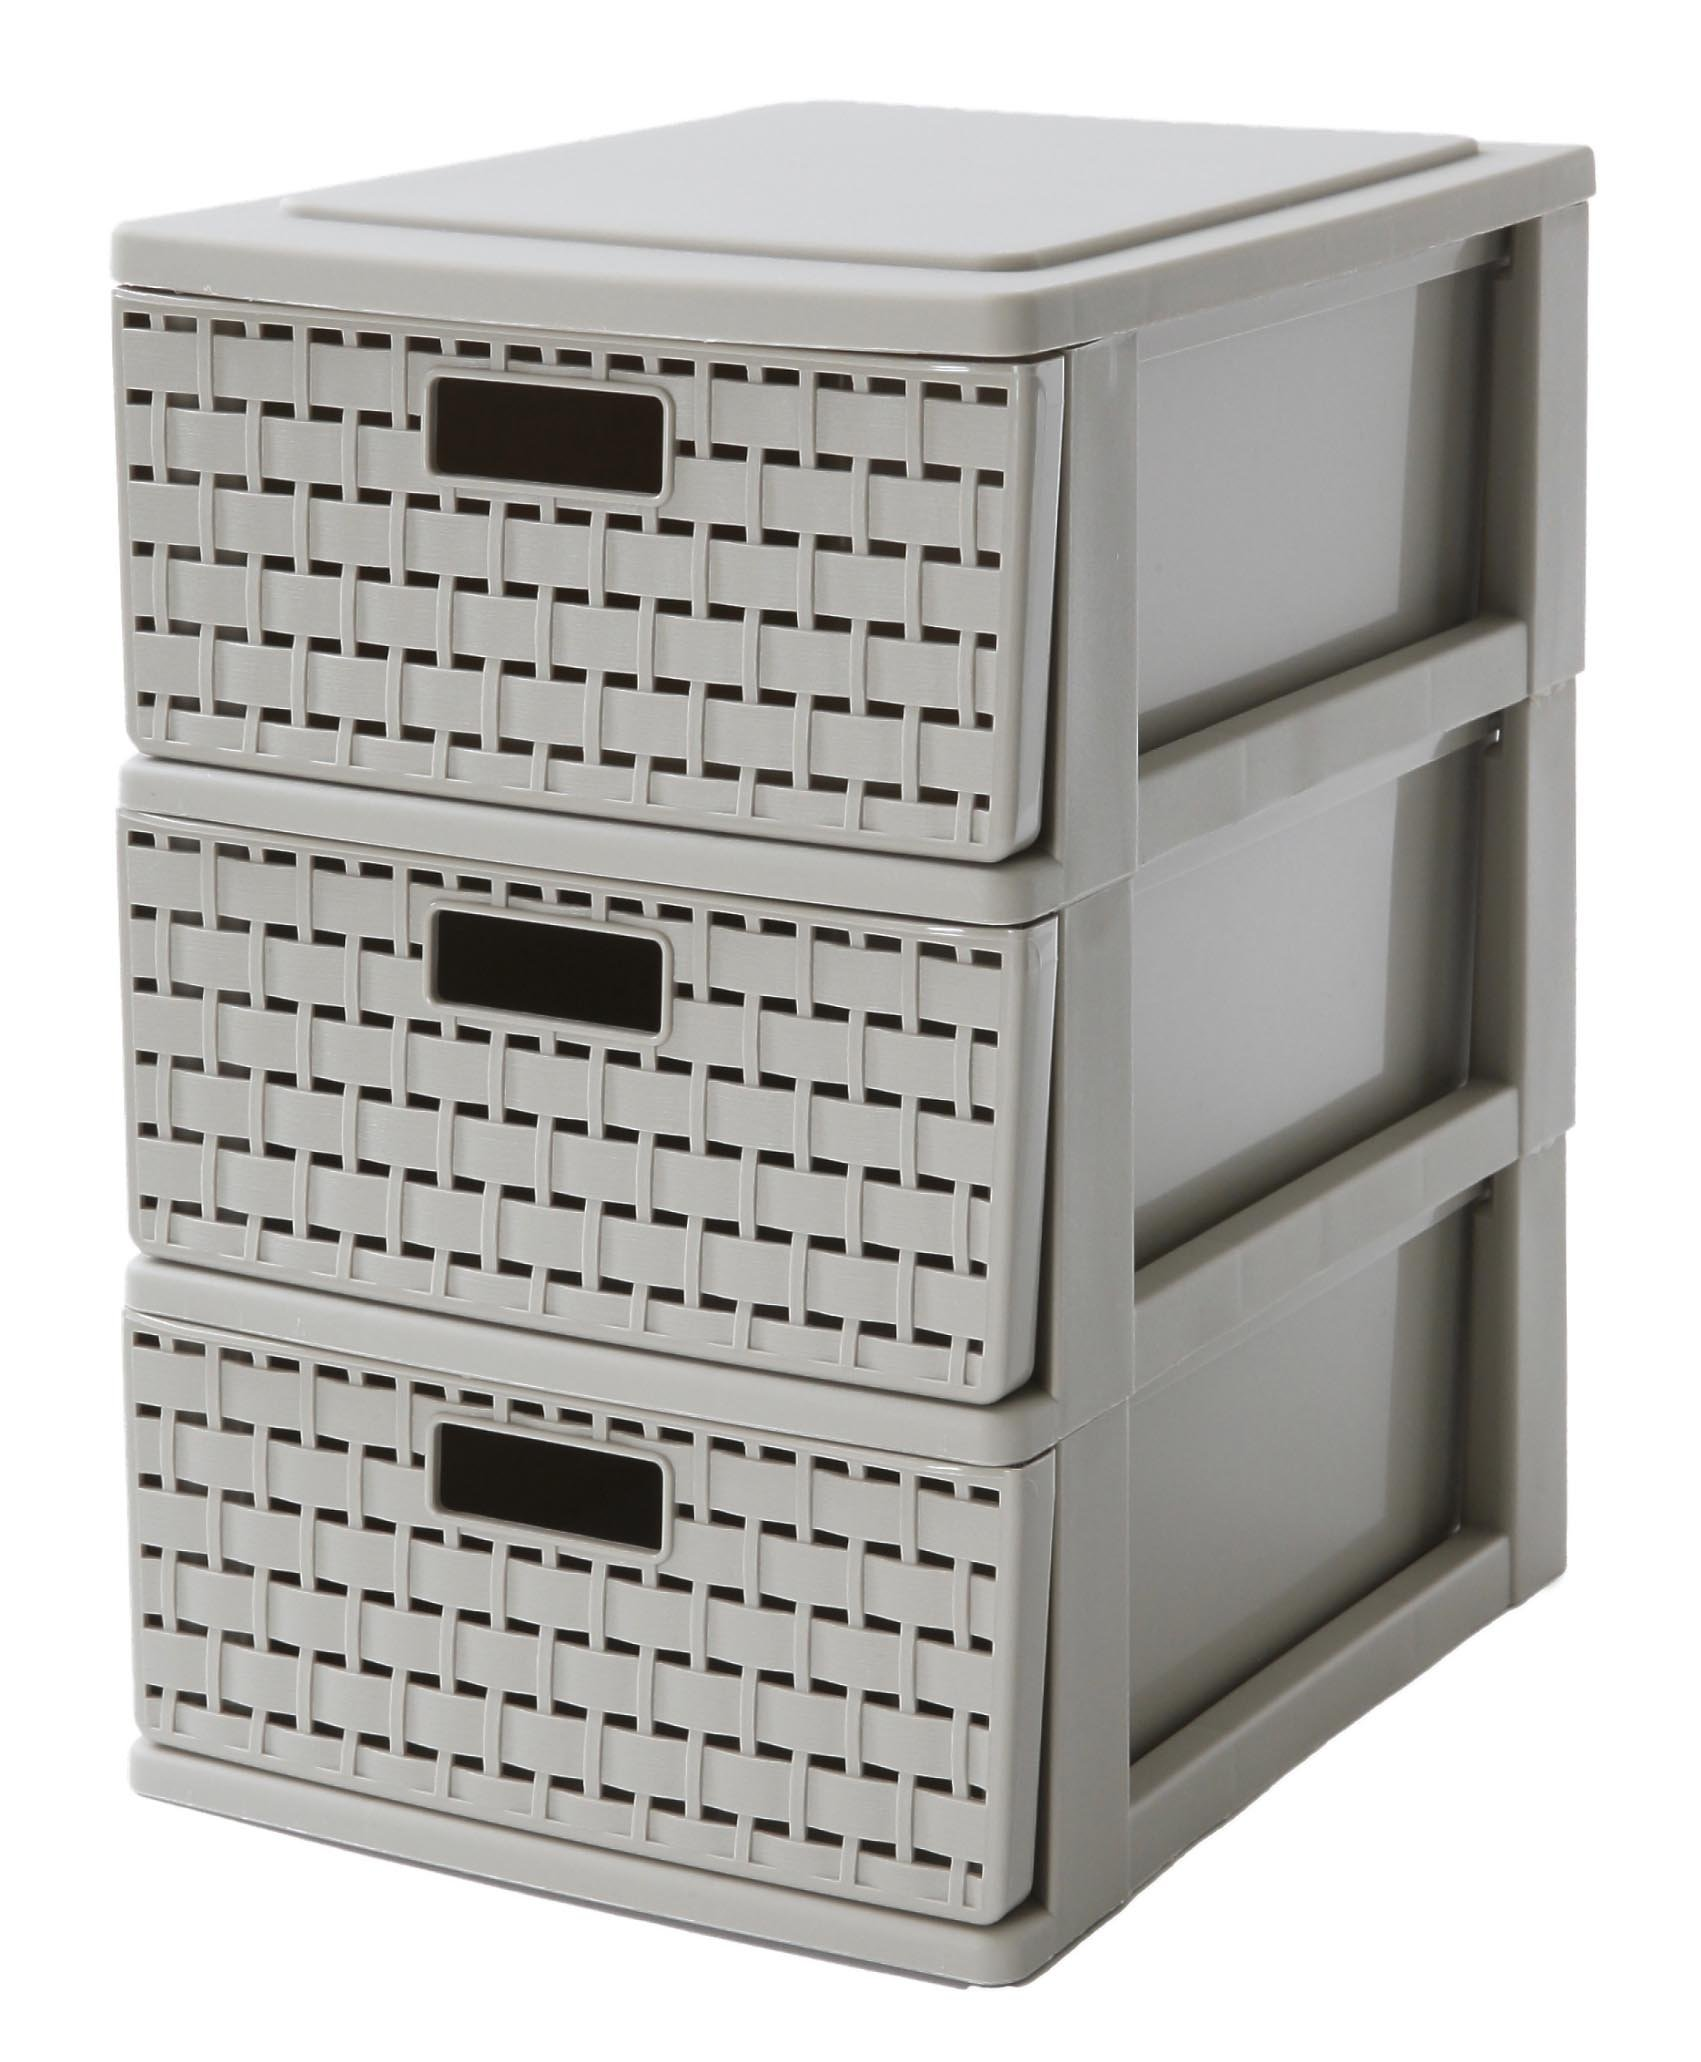 Sundis Country Tower Storage Drawer, Beige, A6